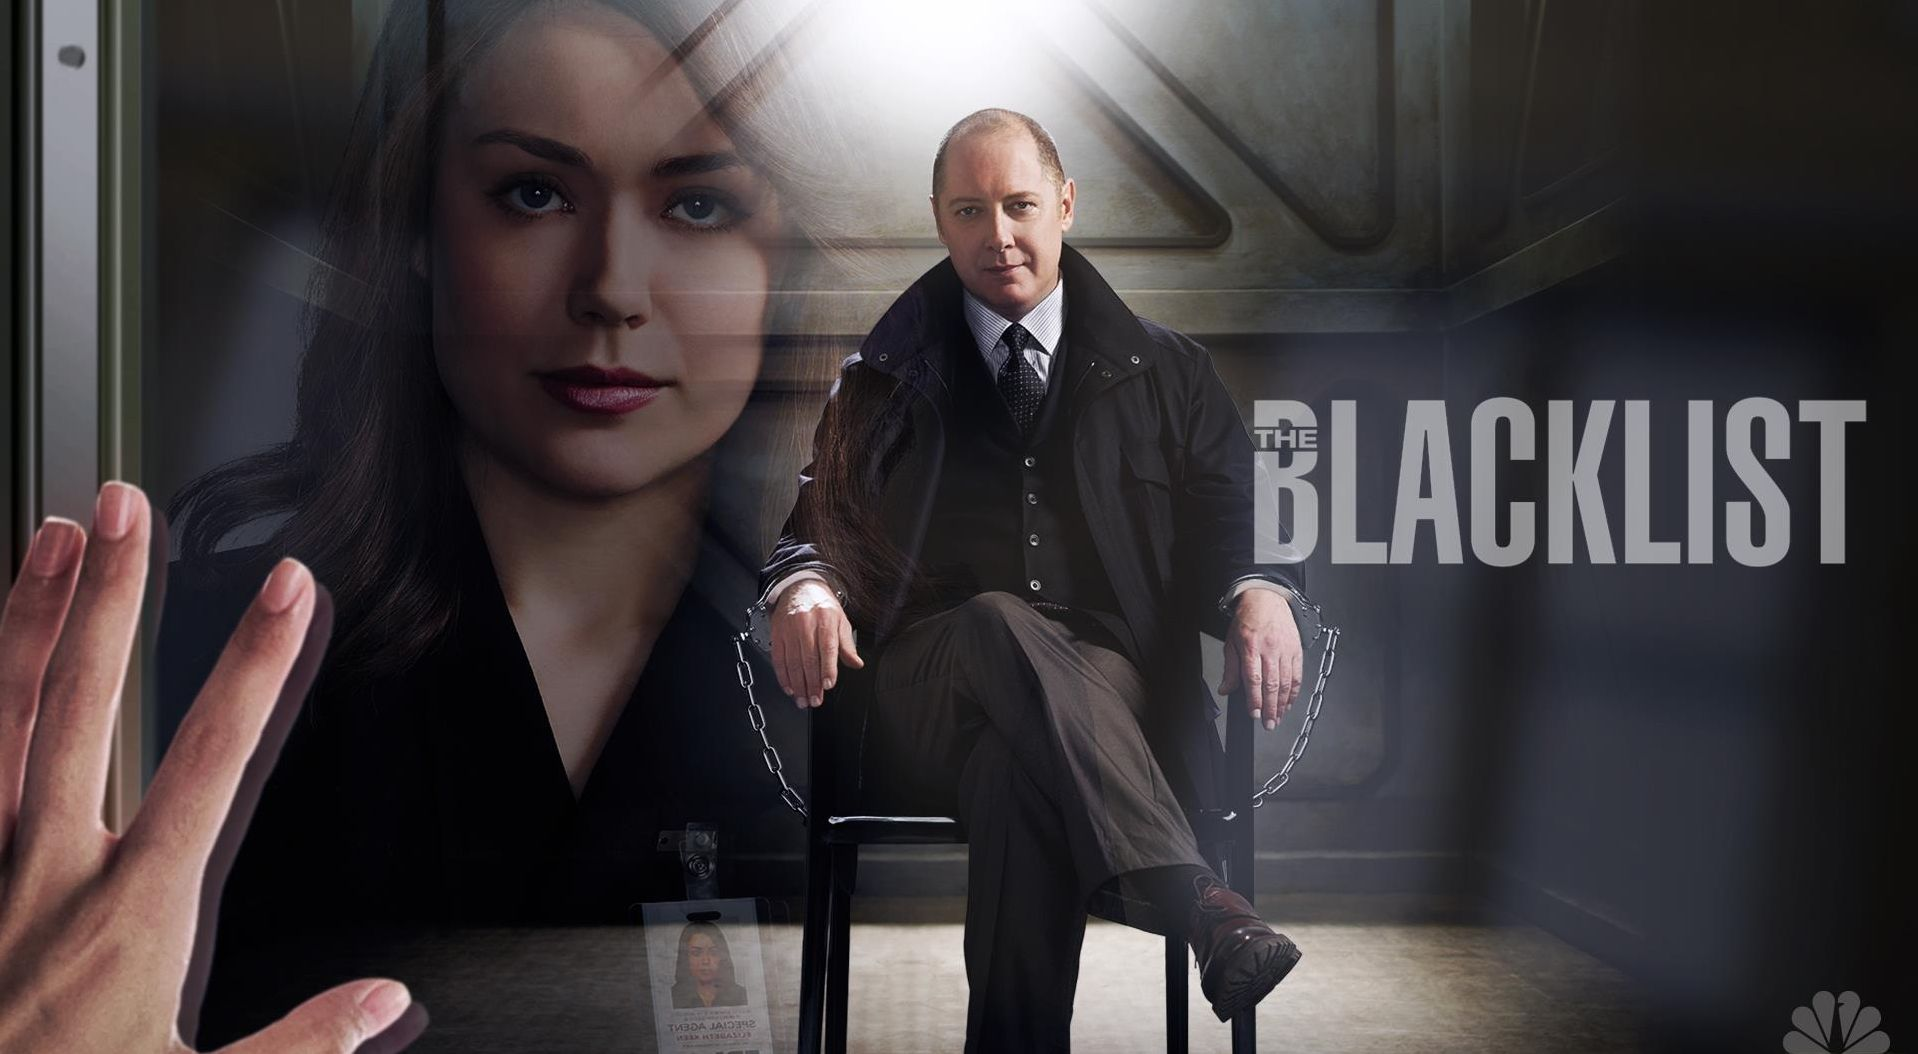 The Blacklist Season 1 Finale - Berlin (No. 8) Conclusion Review